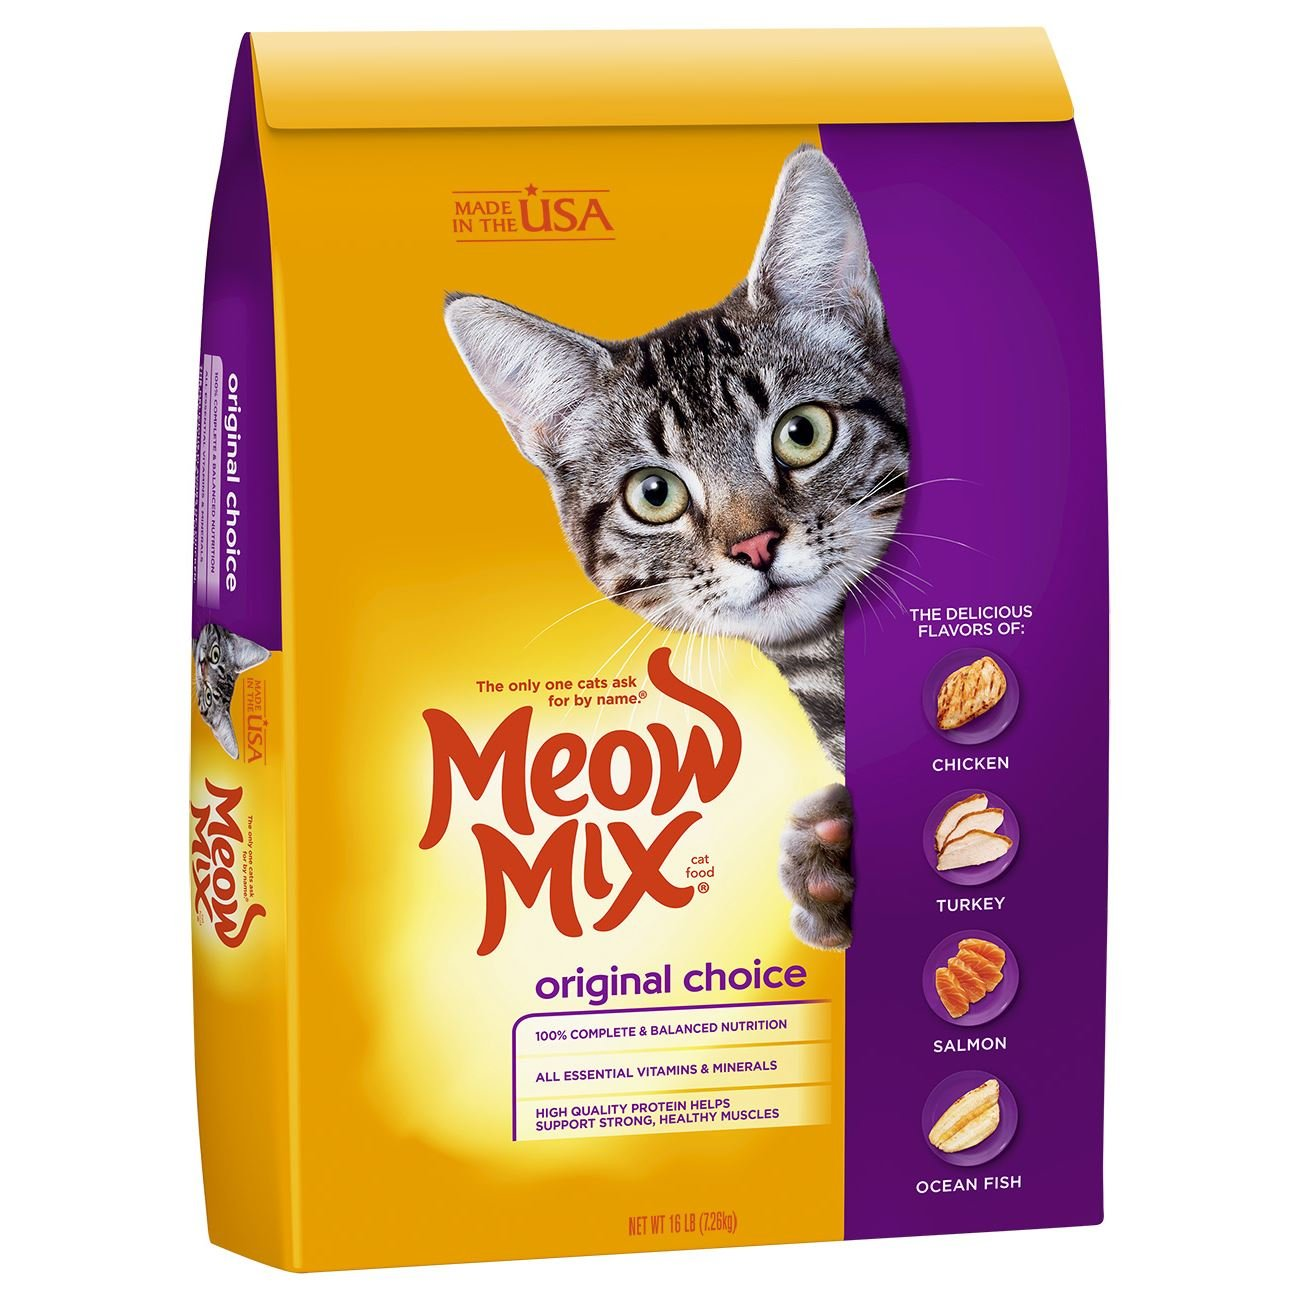 Best mature cats brands of food something